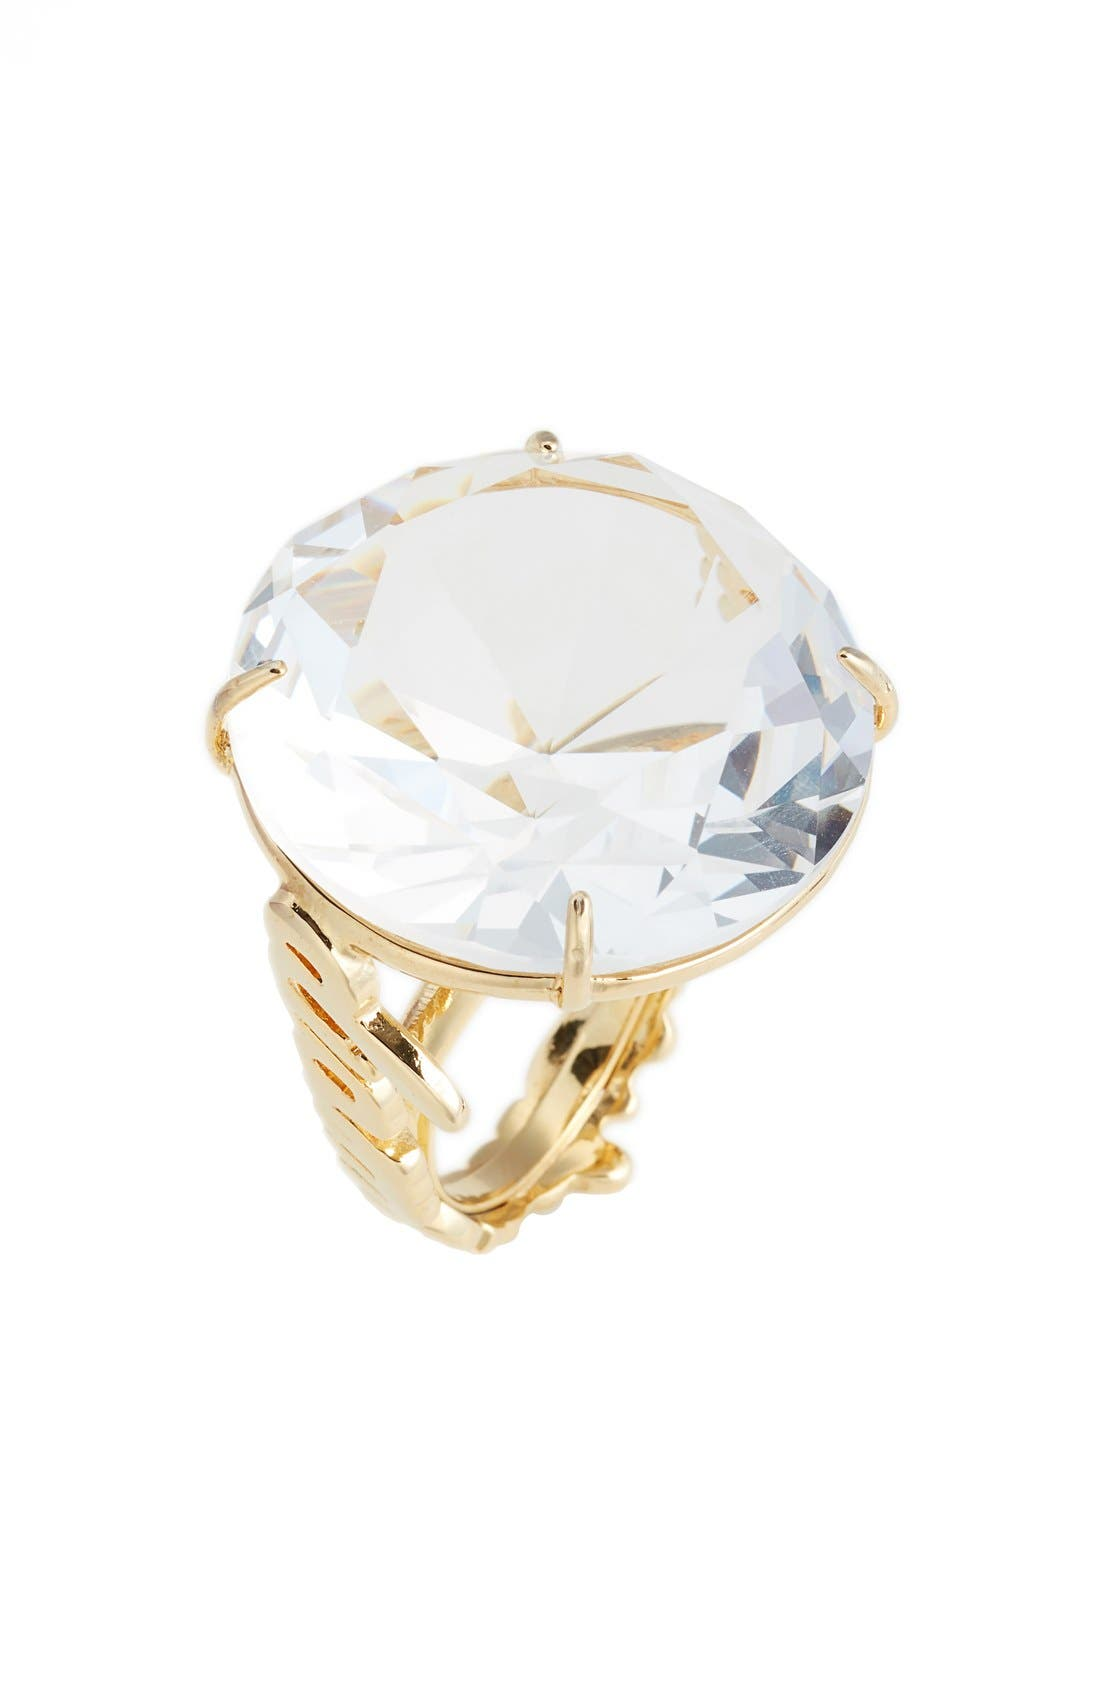 Alternate Image 1 Selected - kate spade new york 'what a gem' crystal cocktail ring